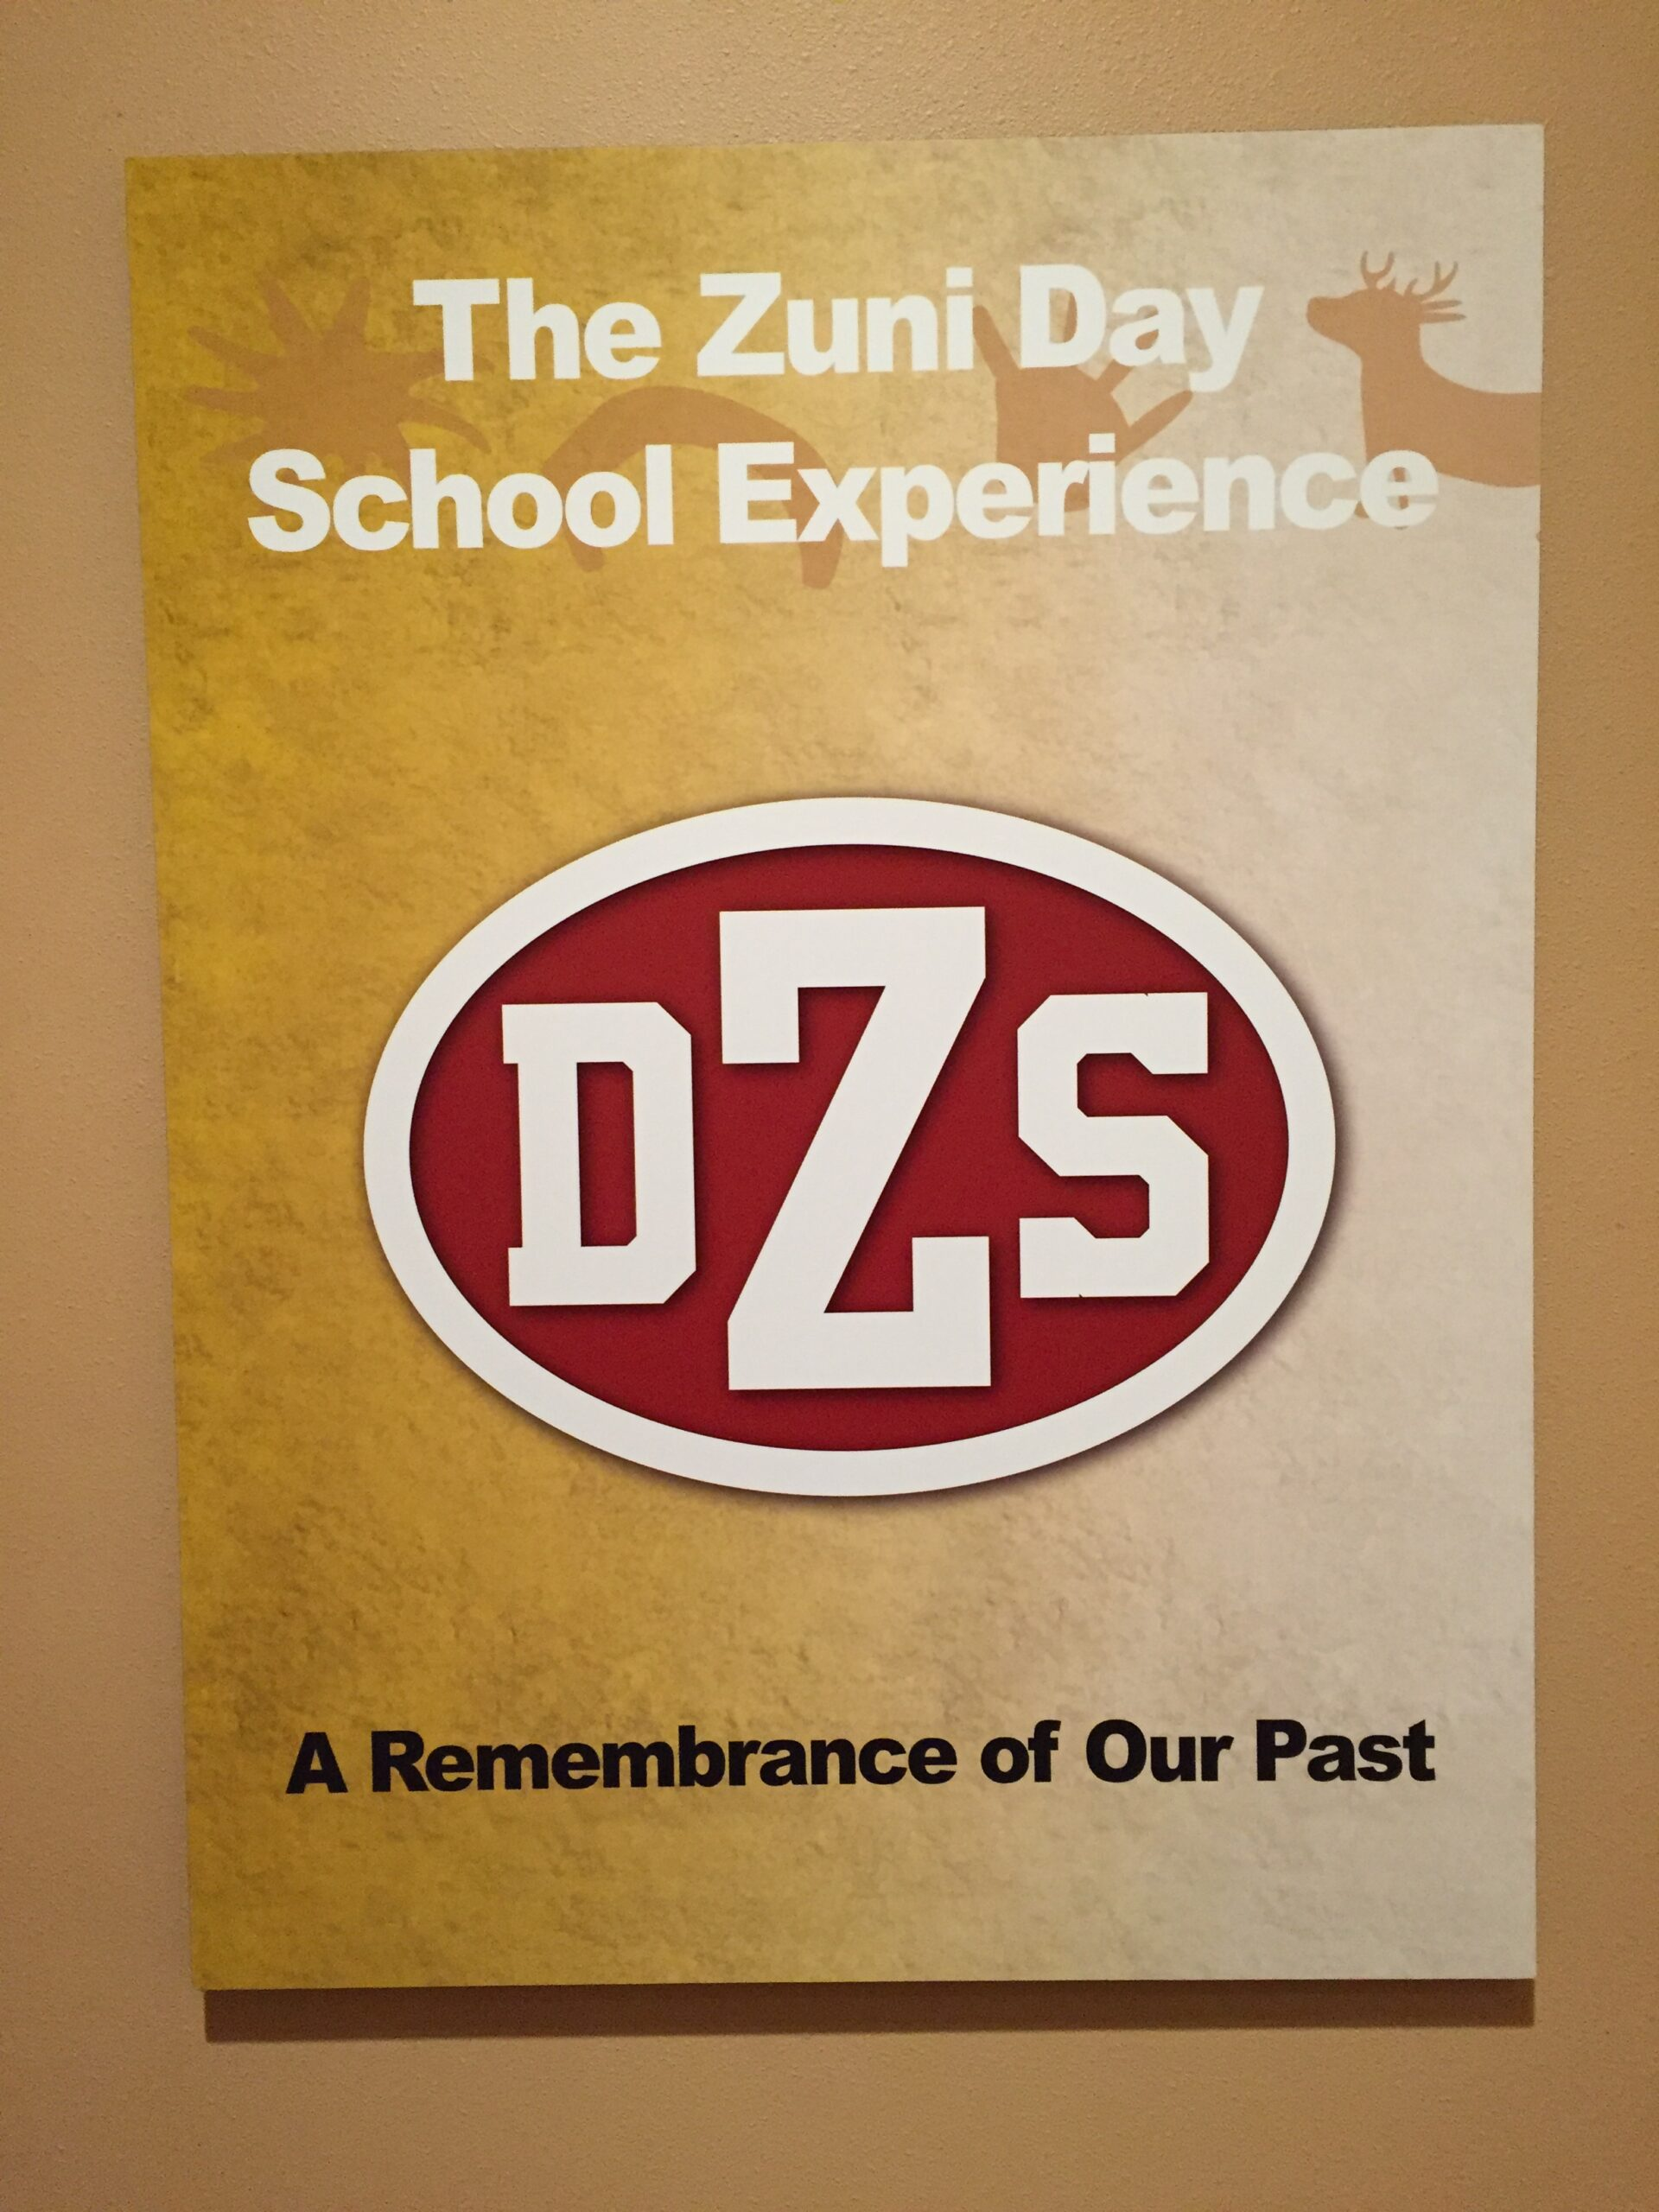 The Zuni Day School Experience